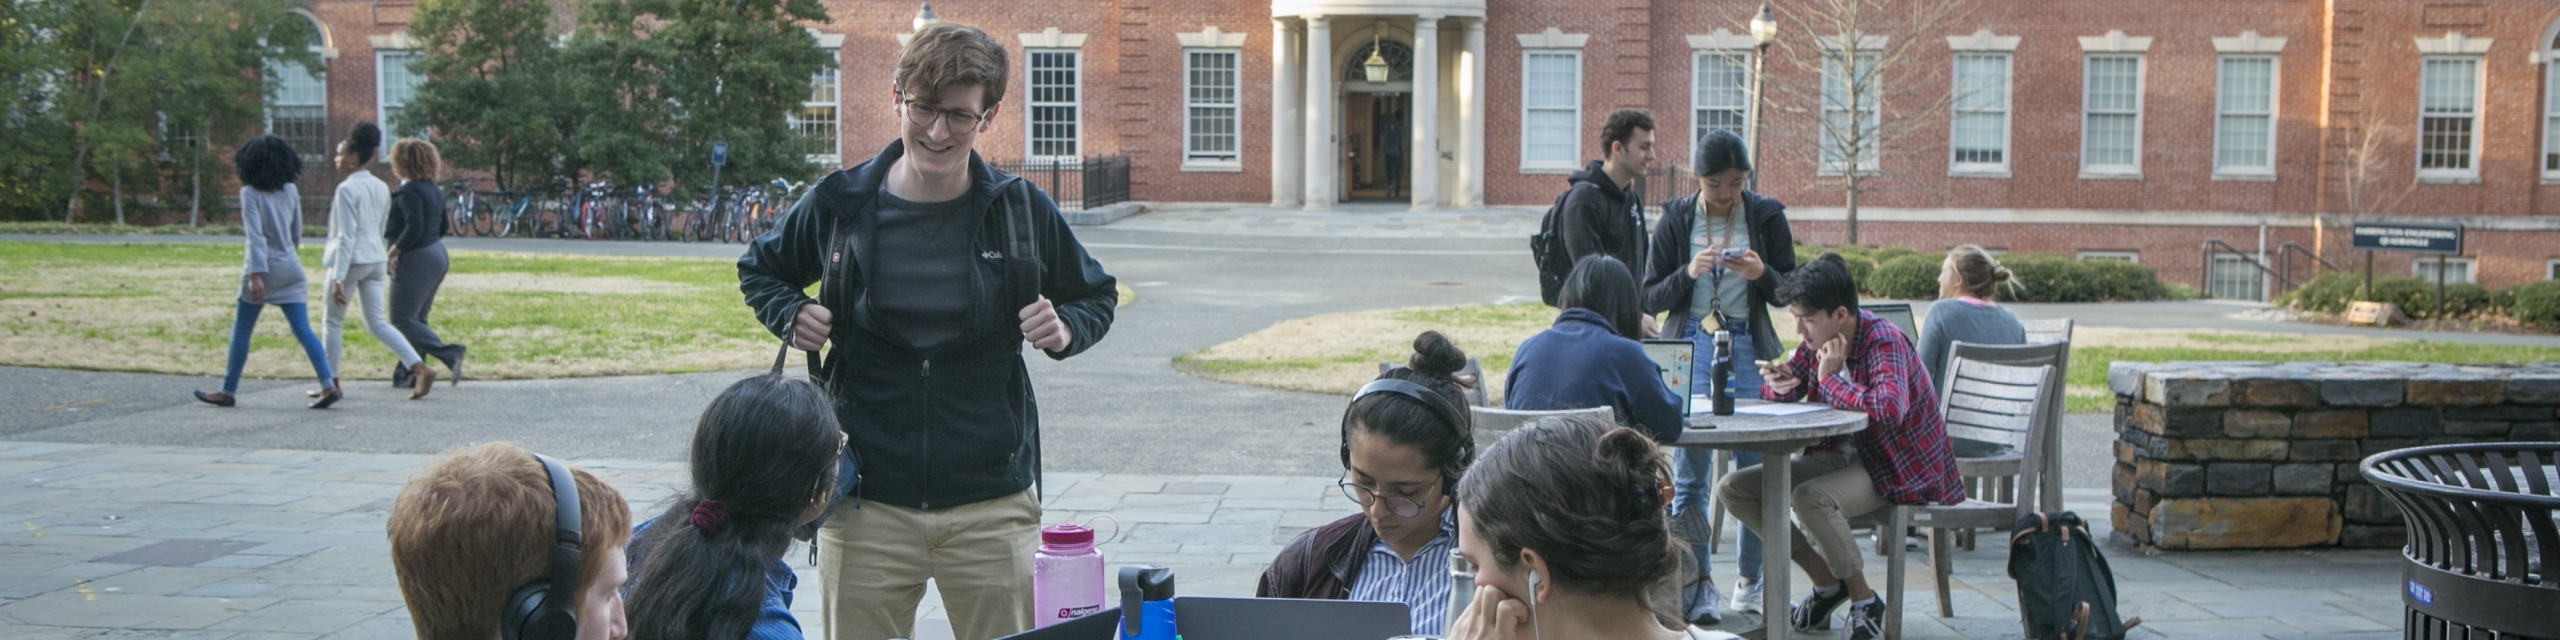 students study outside Hudson Hall on Duke campus